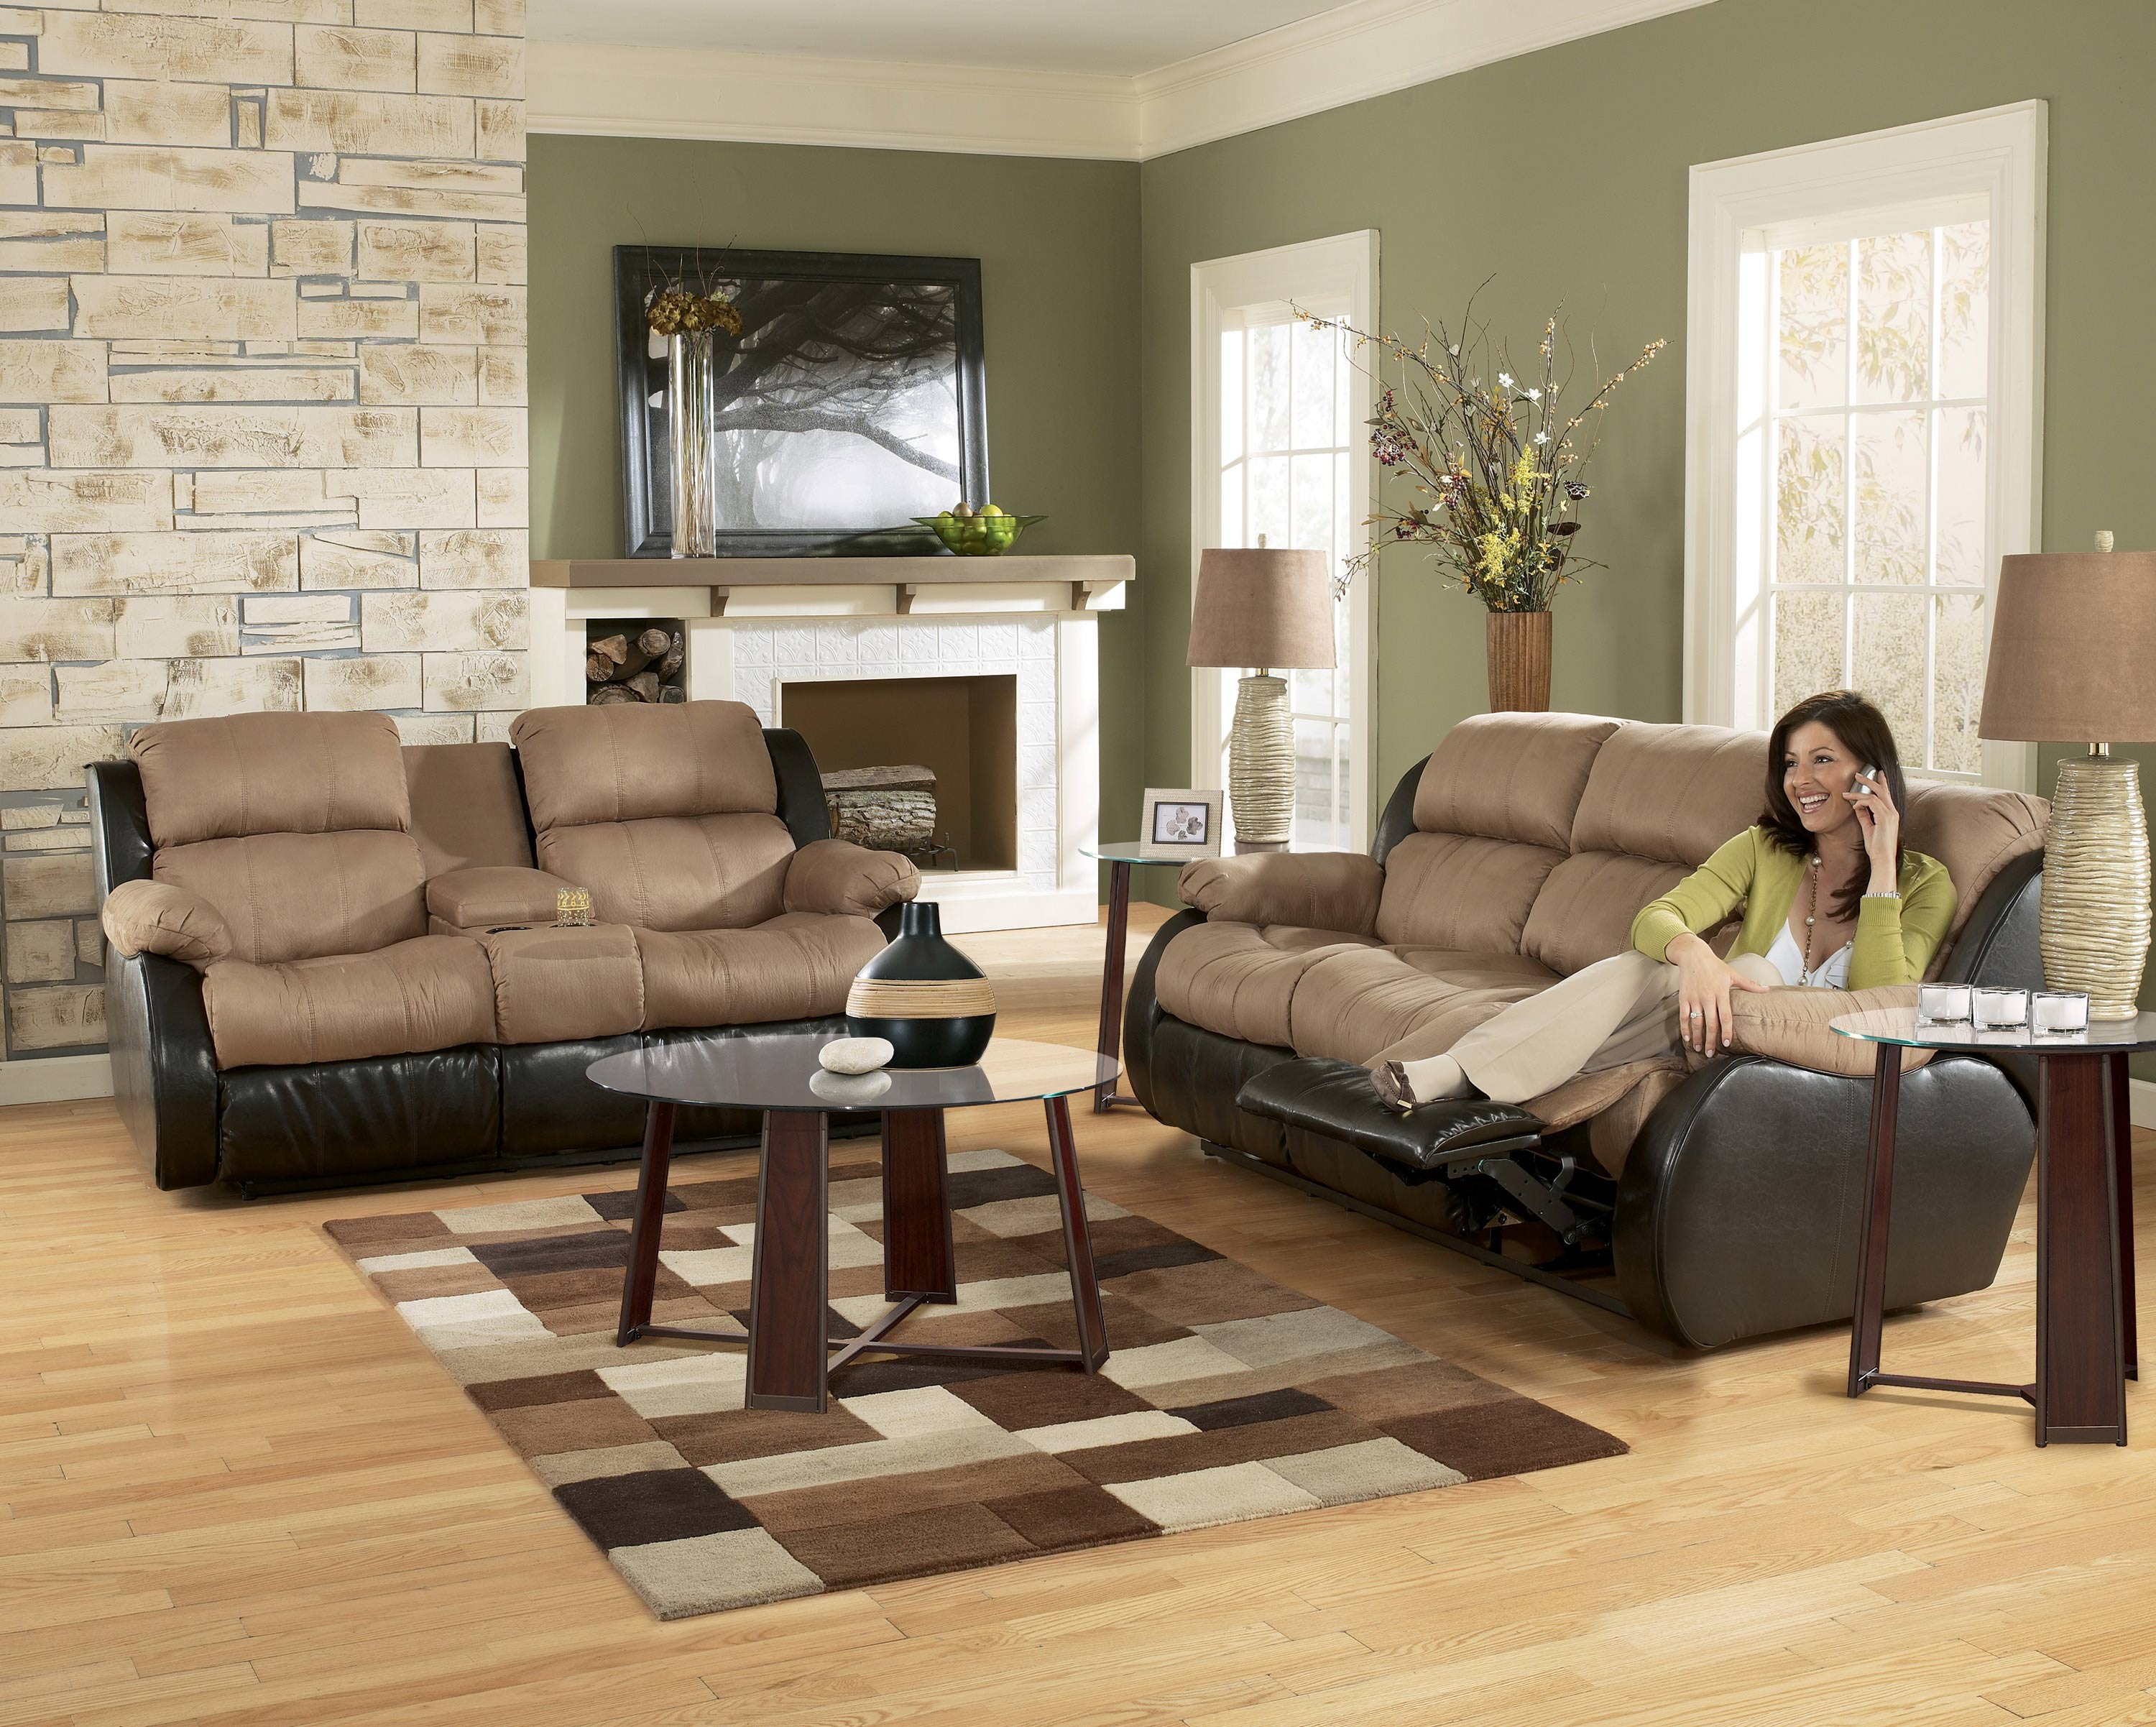 couches living room furniture of america living room collections roy home design 11365